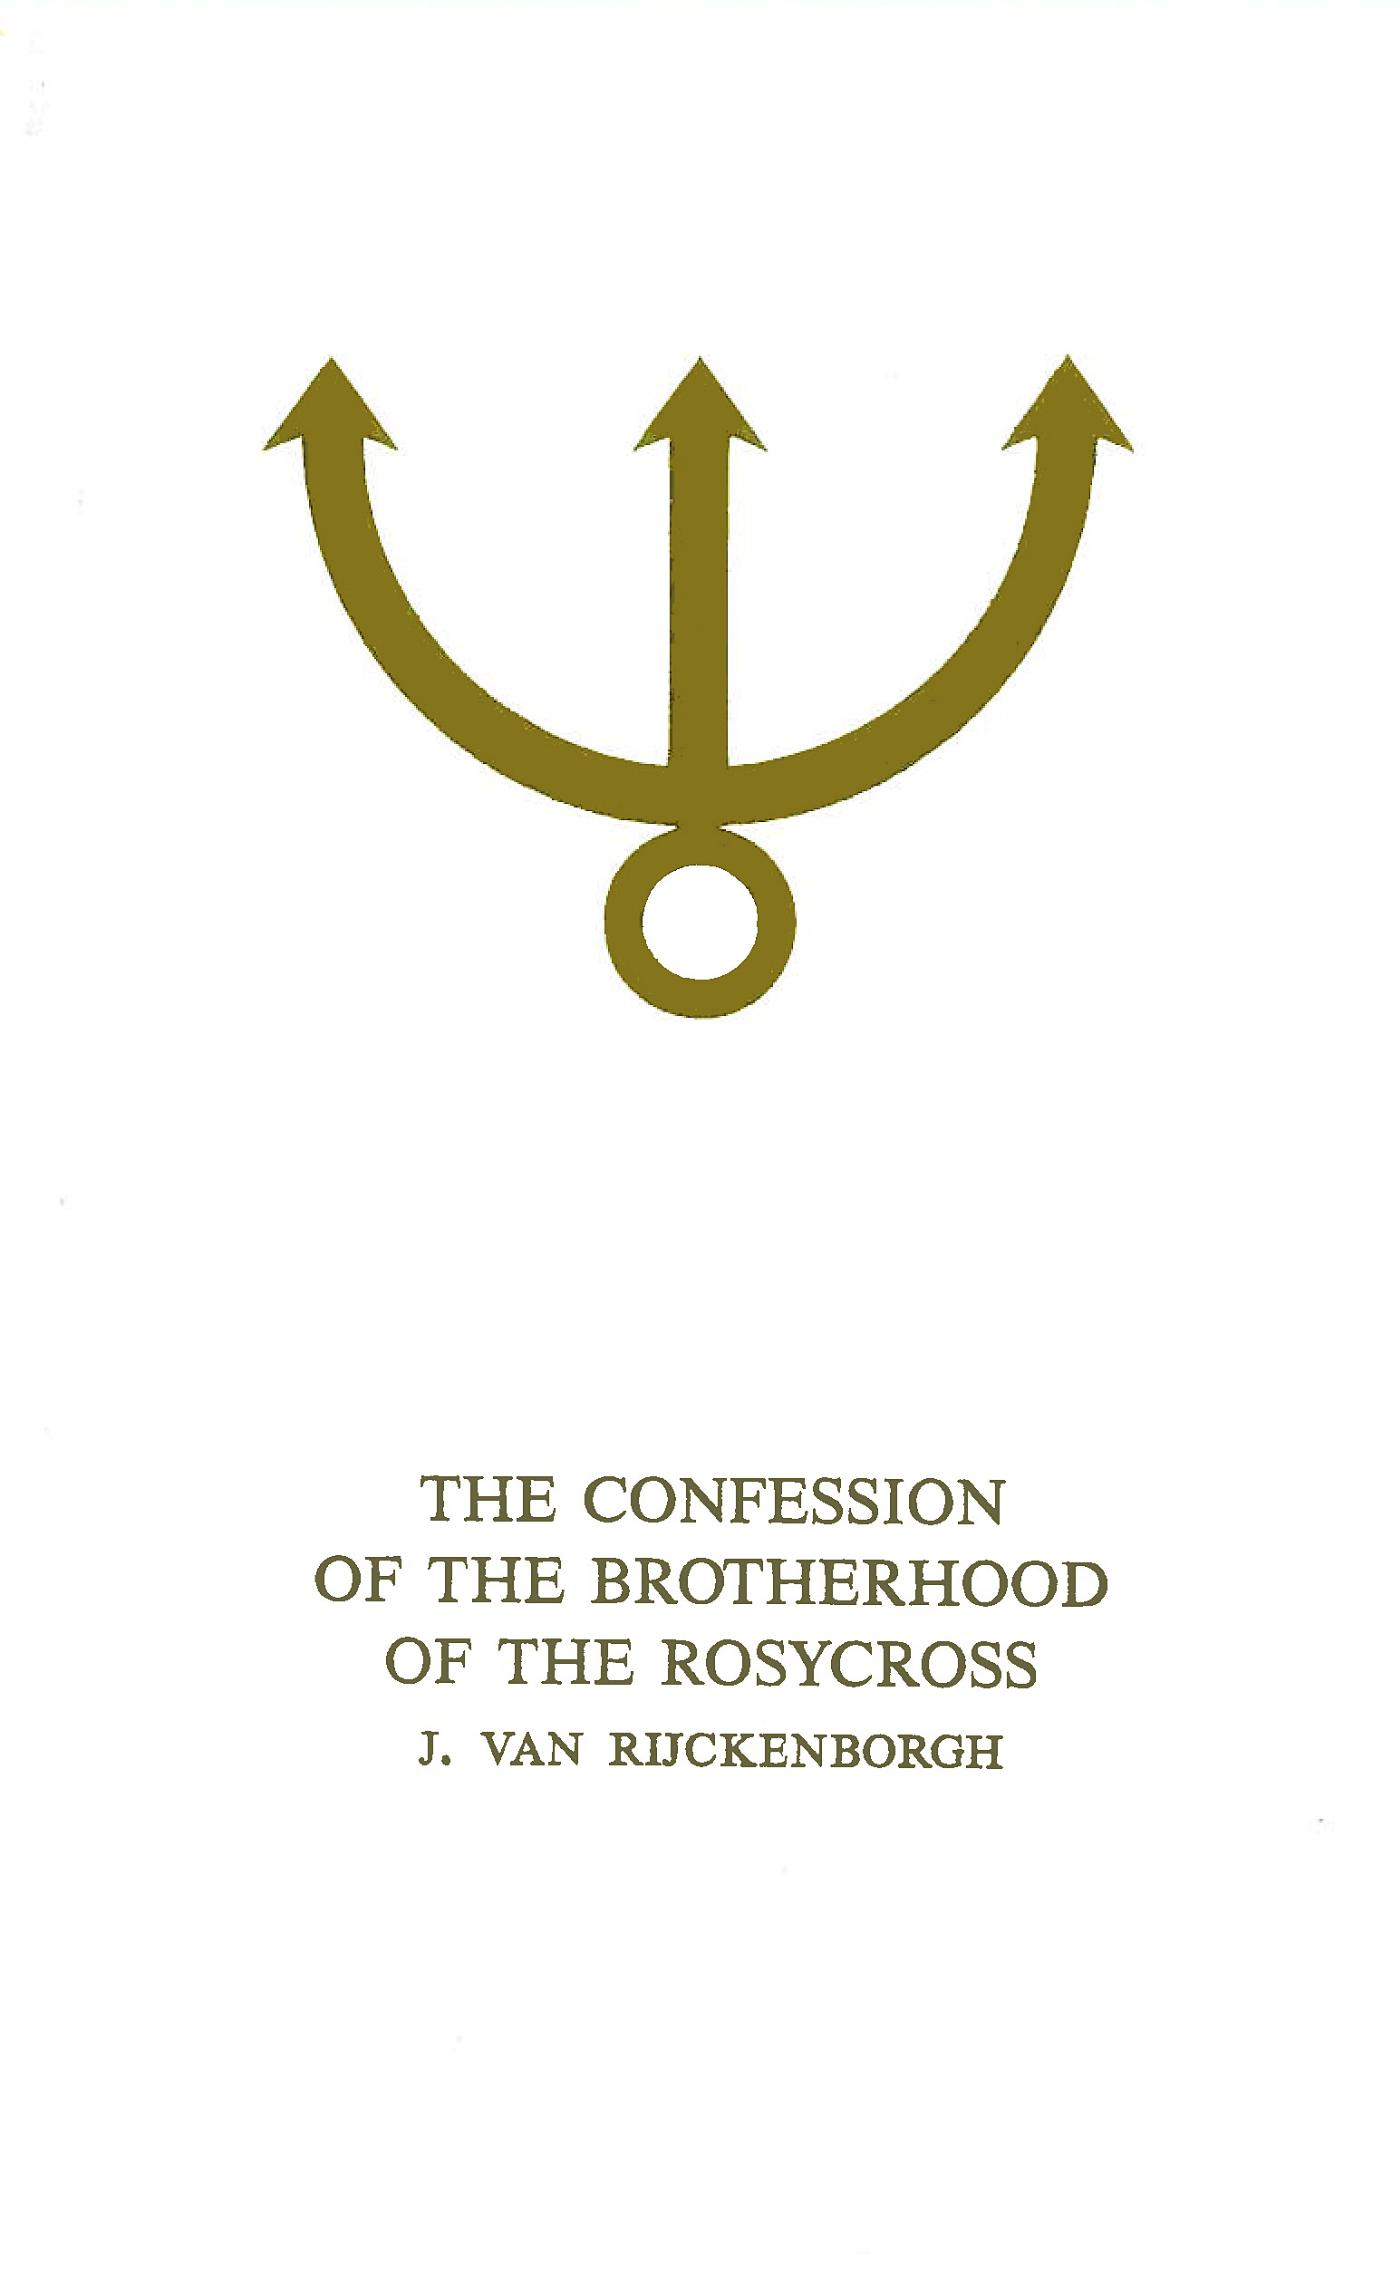 Confession of the Brotherhood of the Rosycross